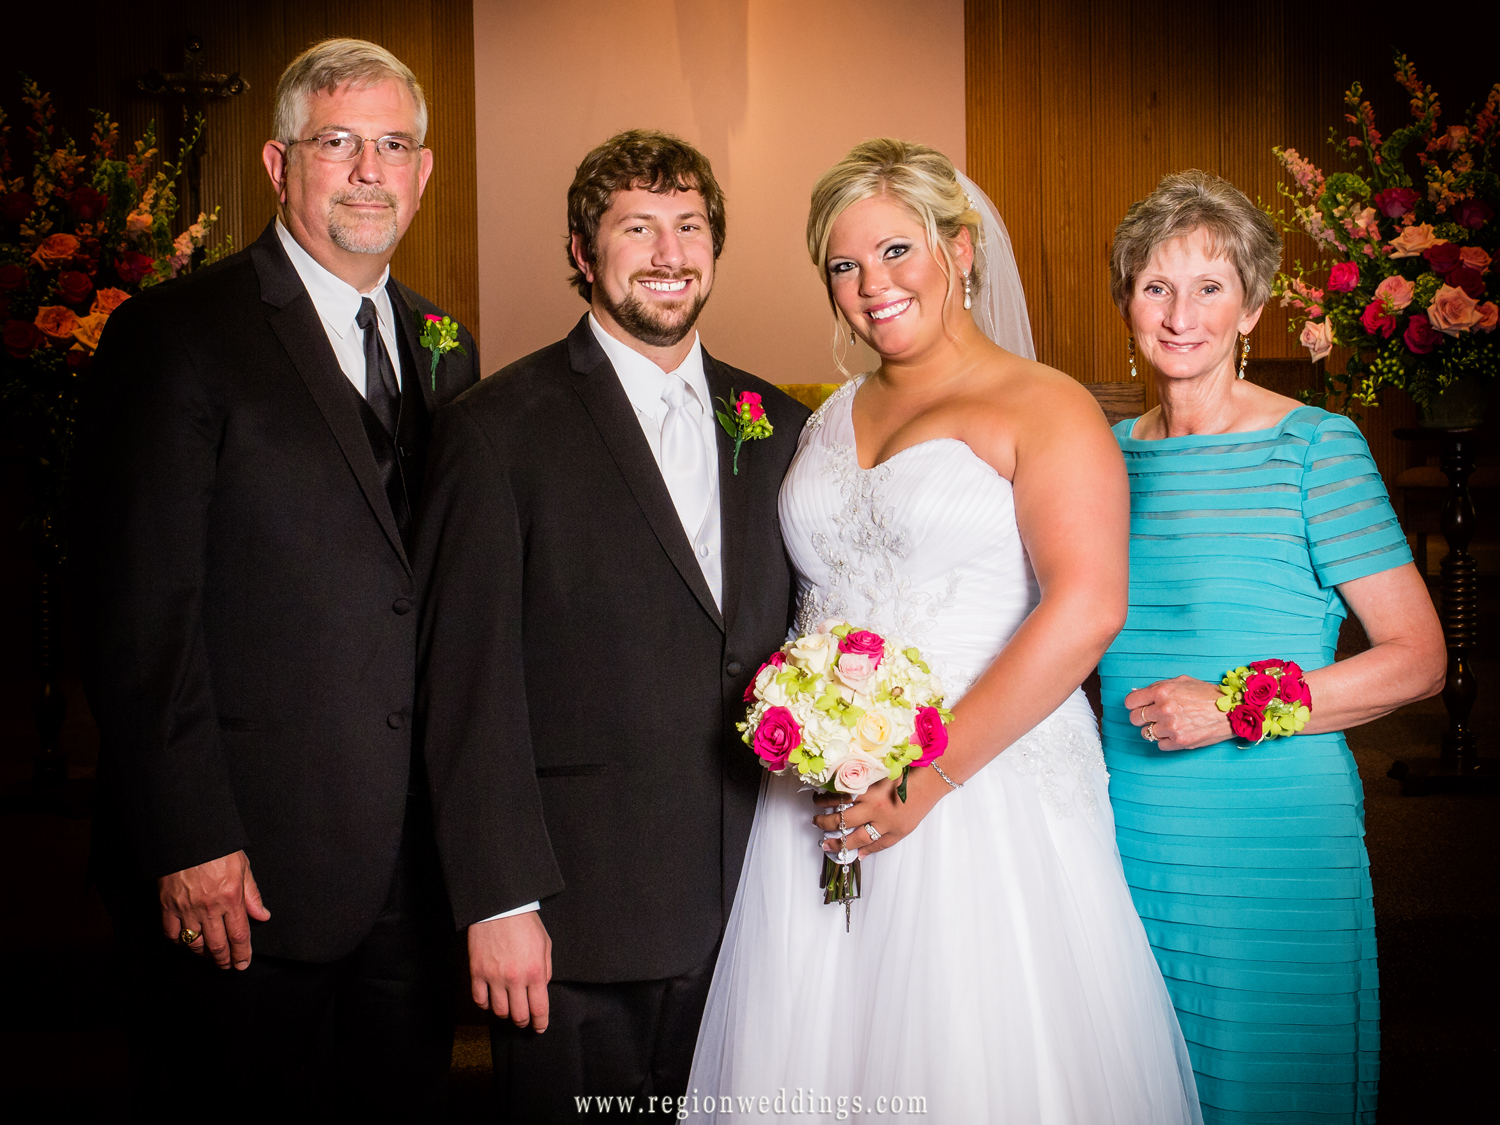 Parents of the groom pose with him and his bride at the altar of St. Elizabeth Ann Seton Church in Valparaiso, Indiana.